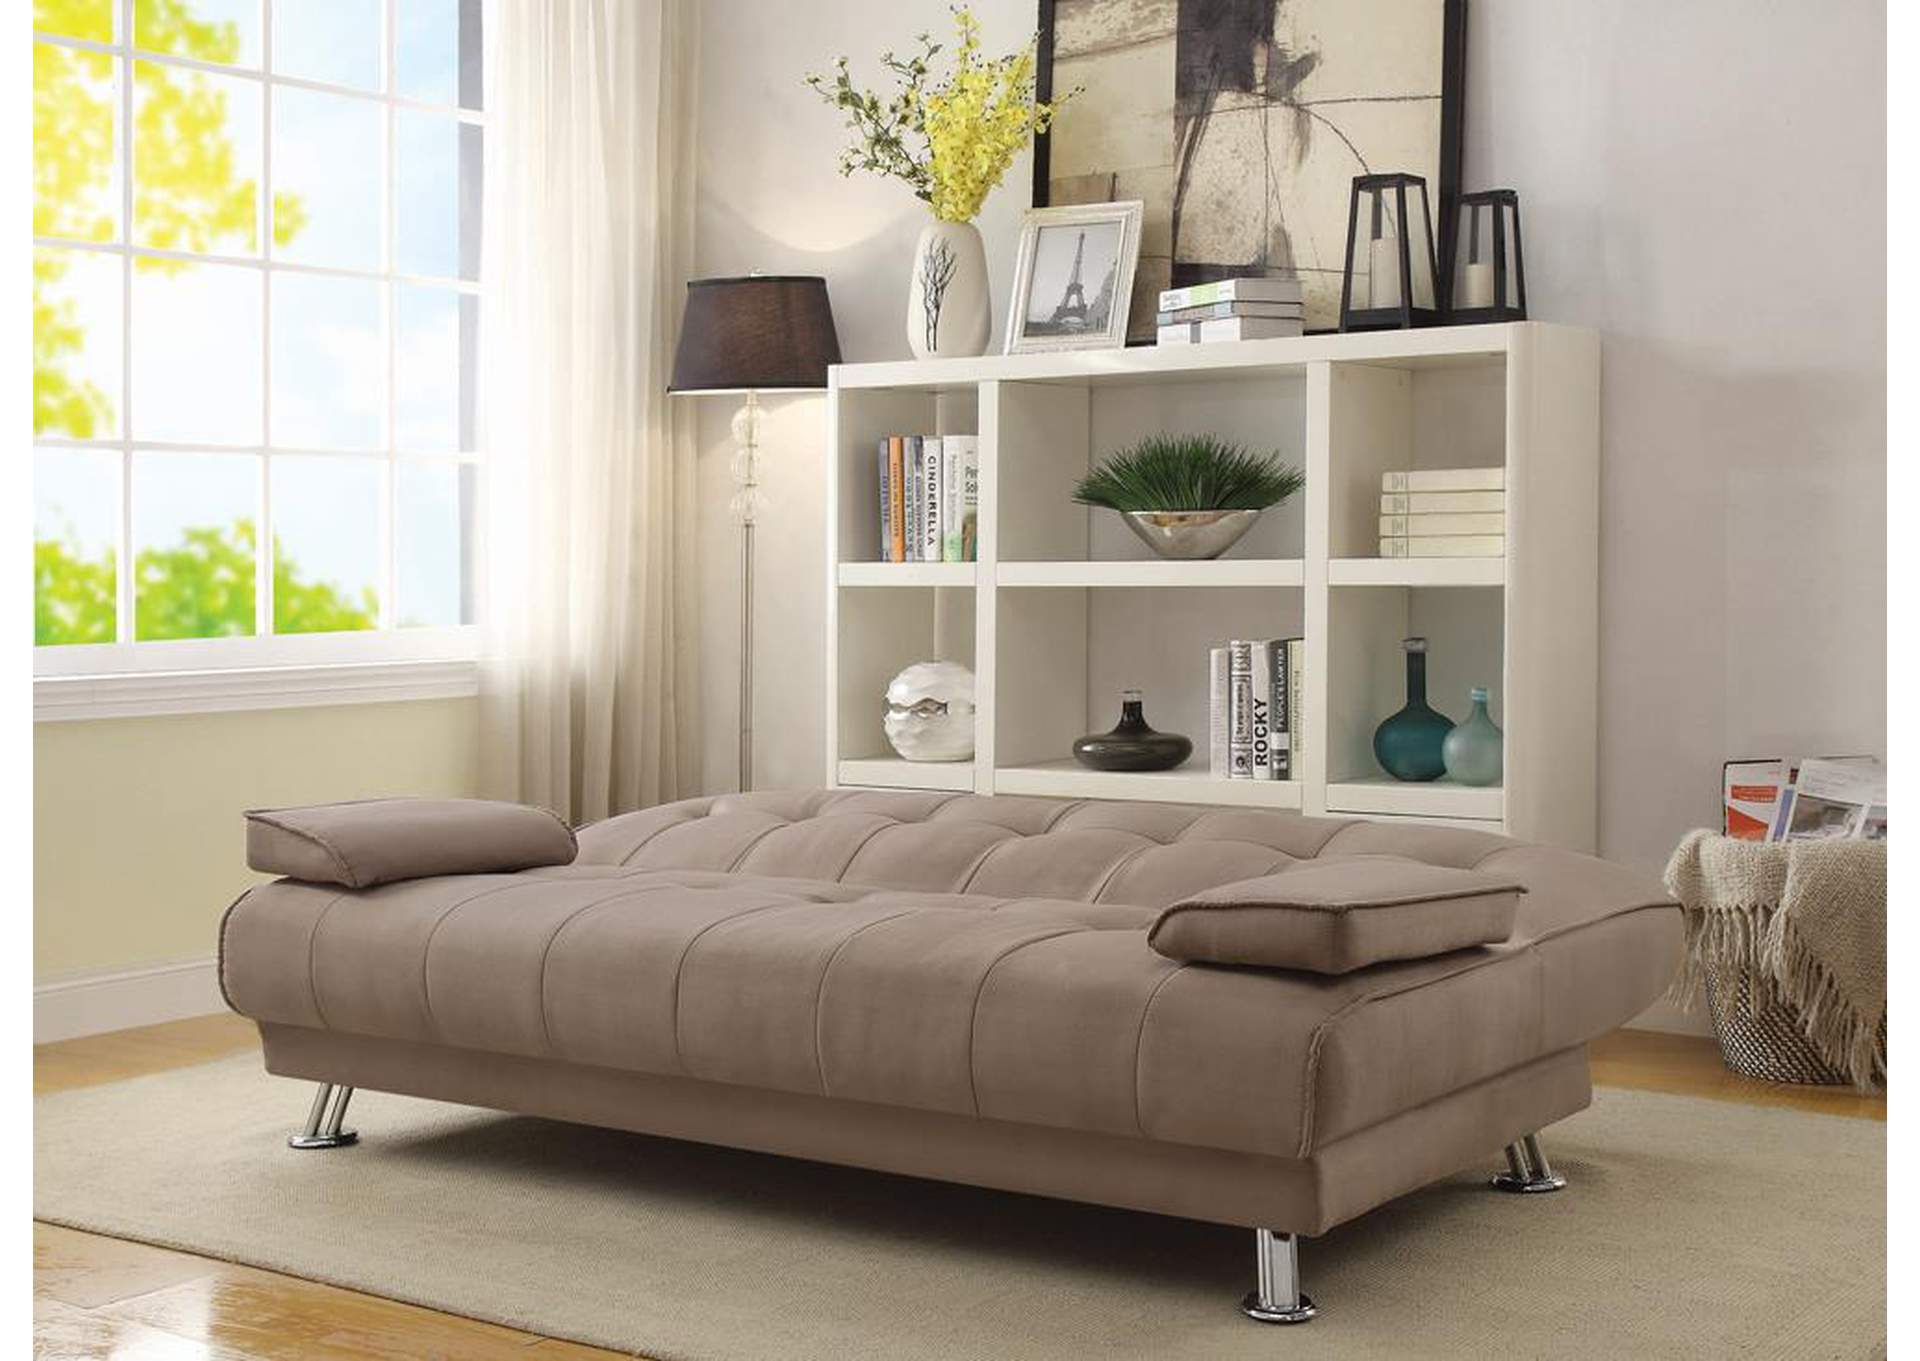 Tan microfiber sofa bedcoaster furniture